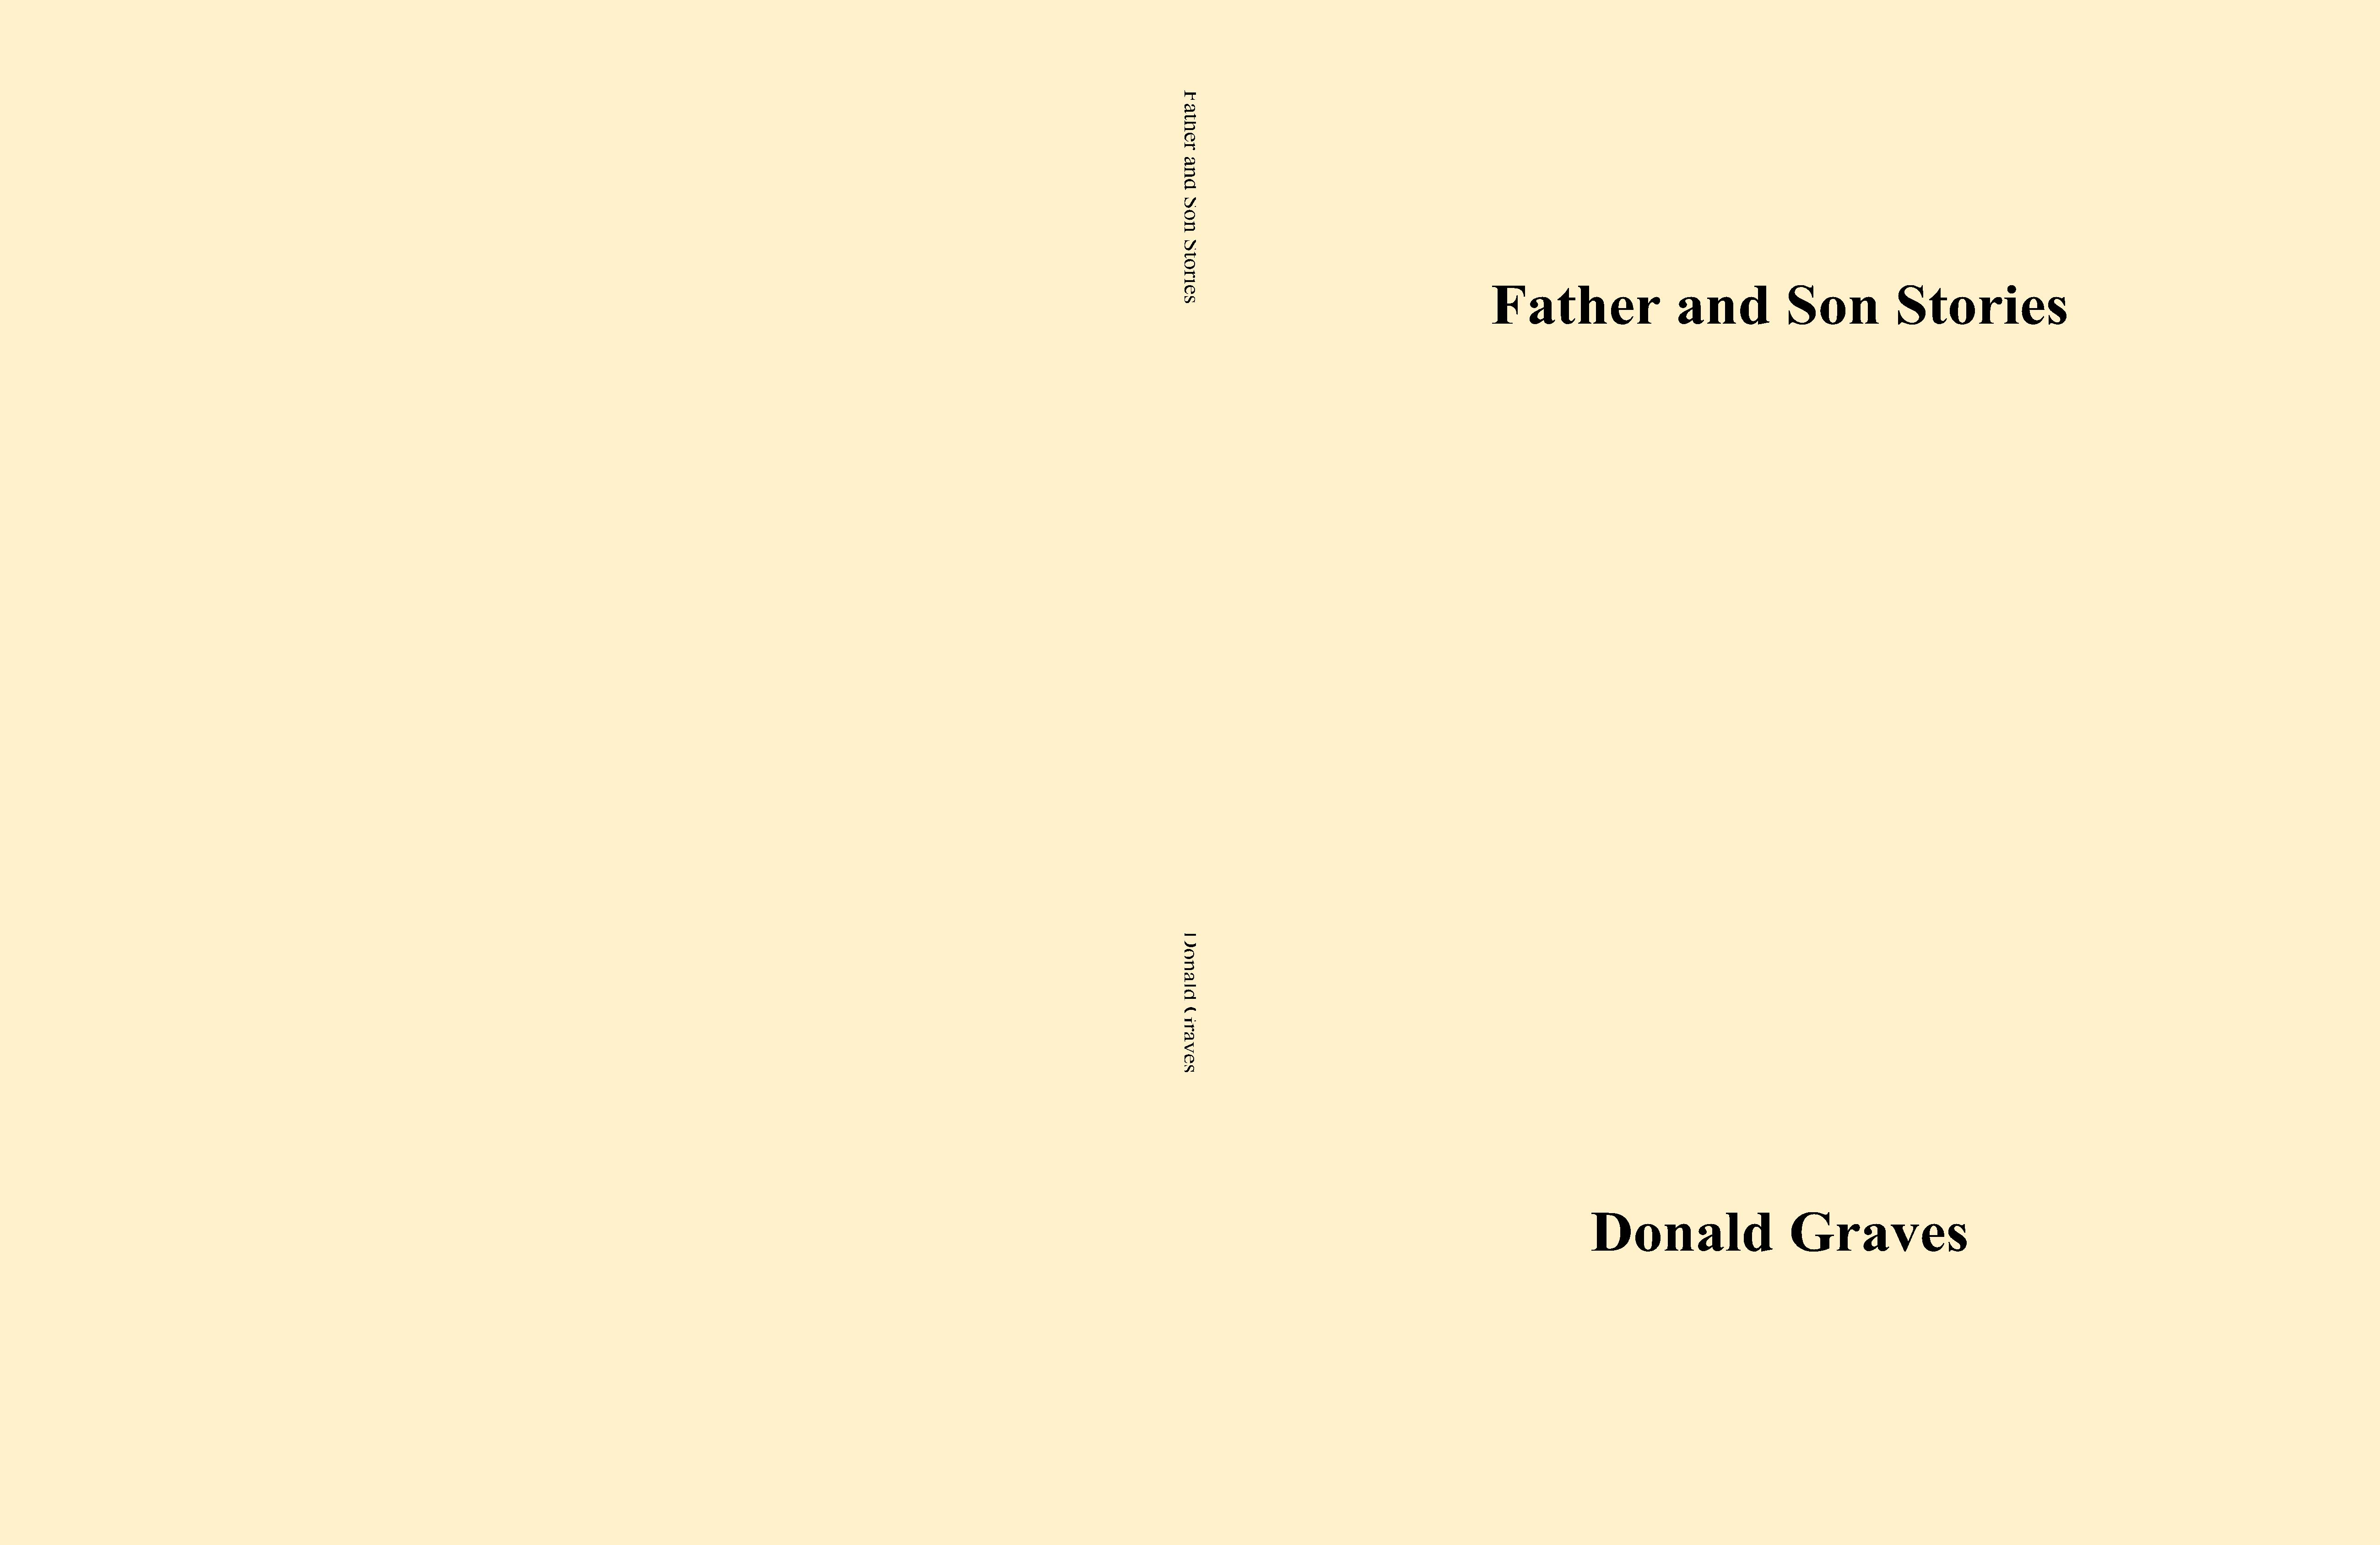 Father and Son Stories cover image